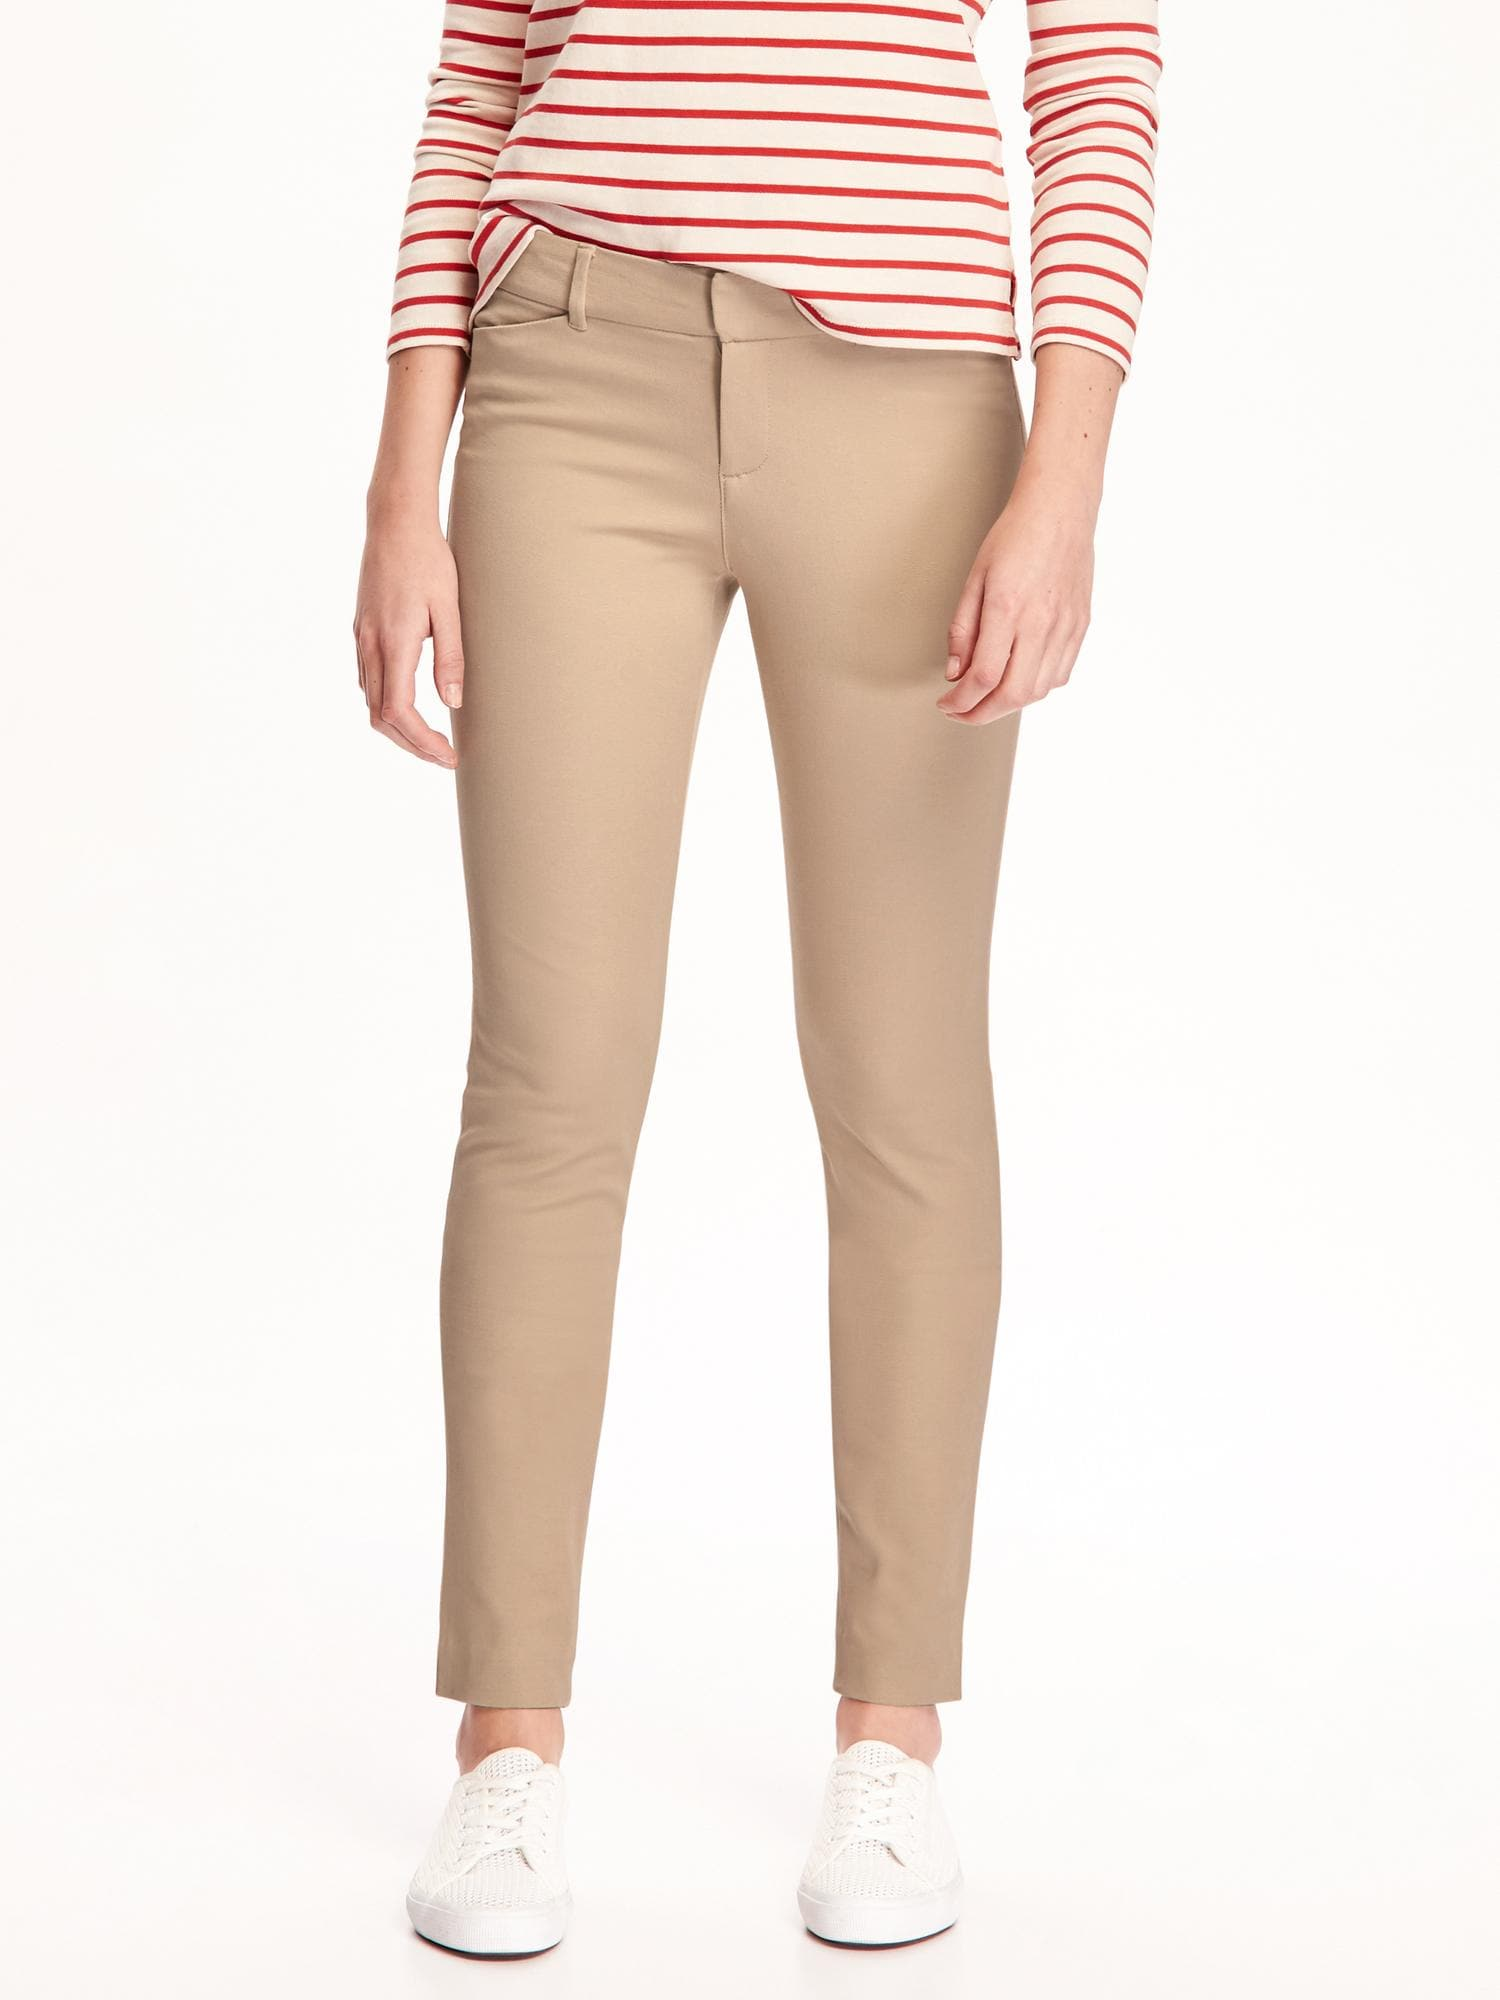 904421071 Mid-Rise Pixie Full-Length Pants for Women | Old Navy